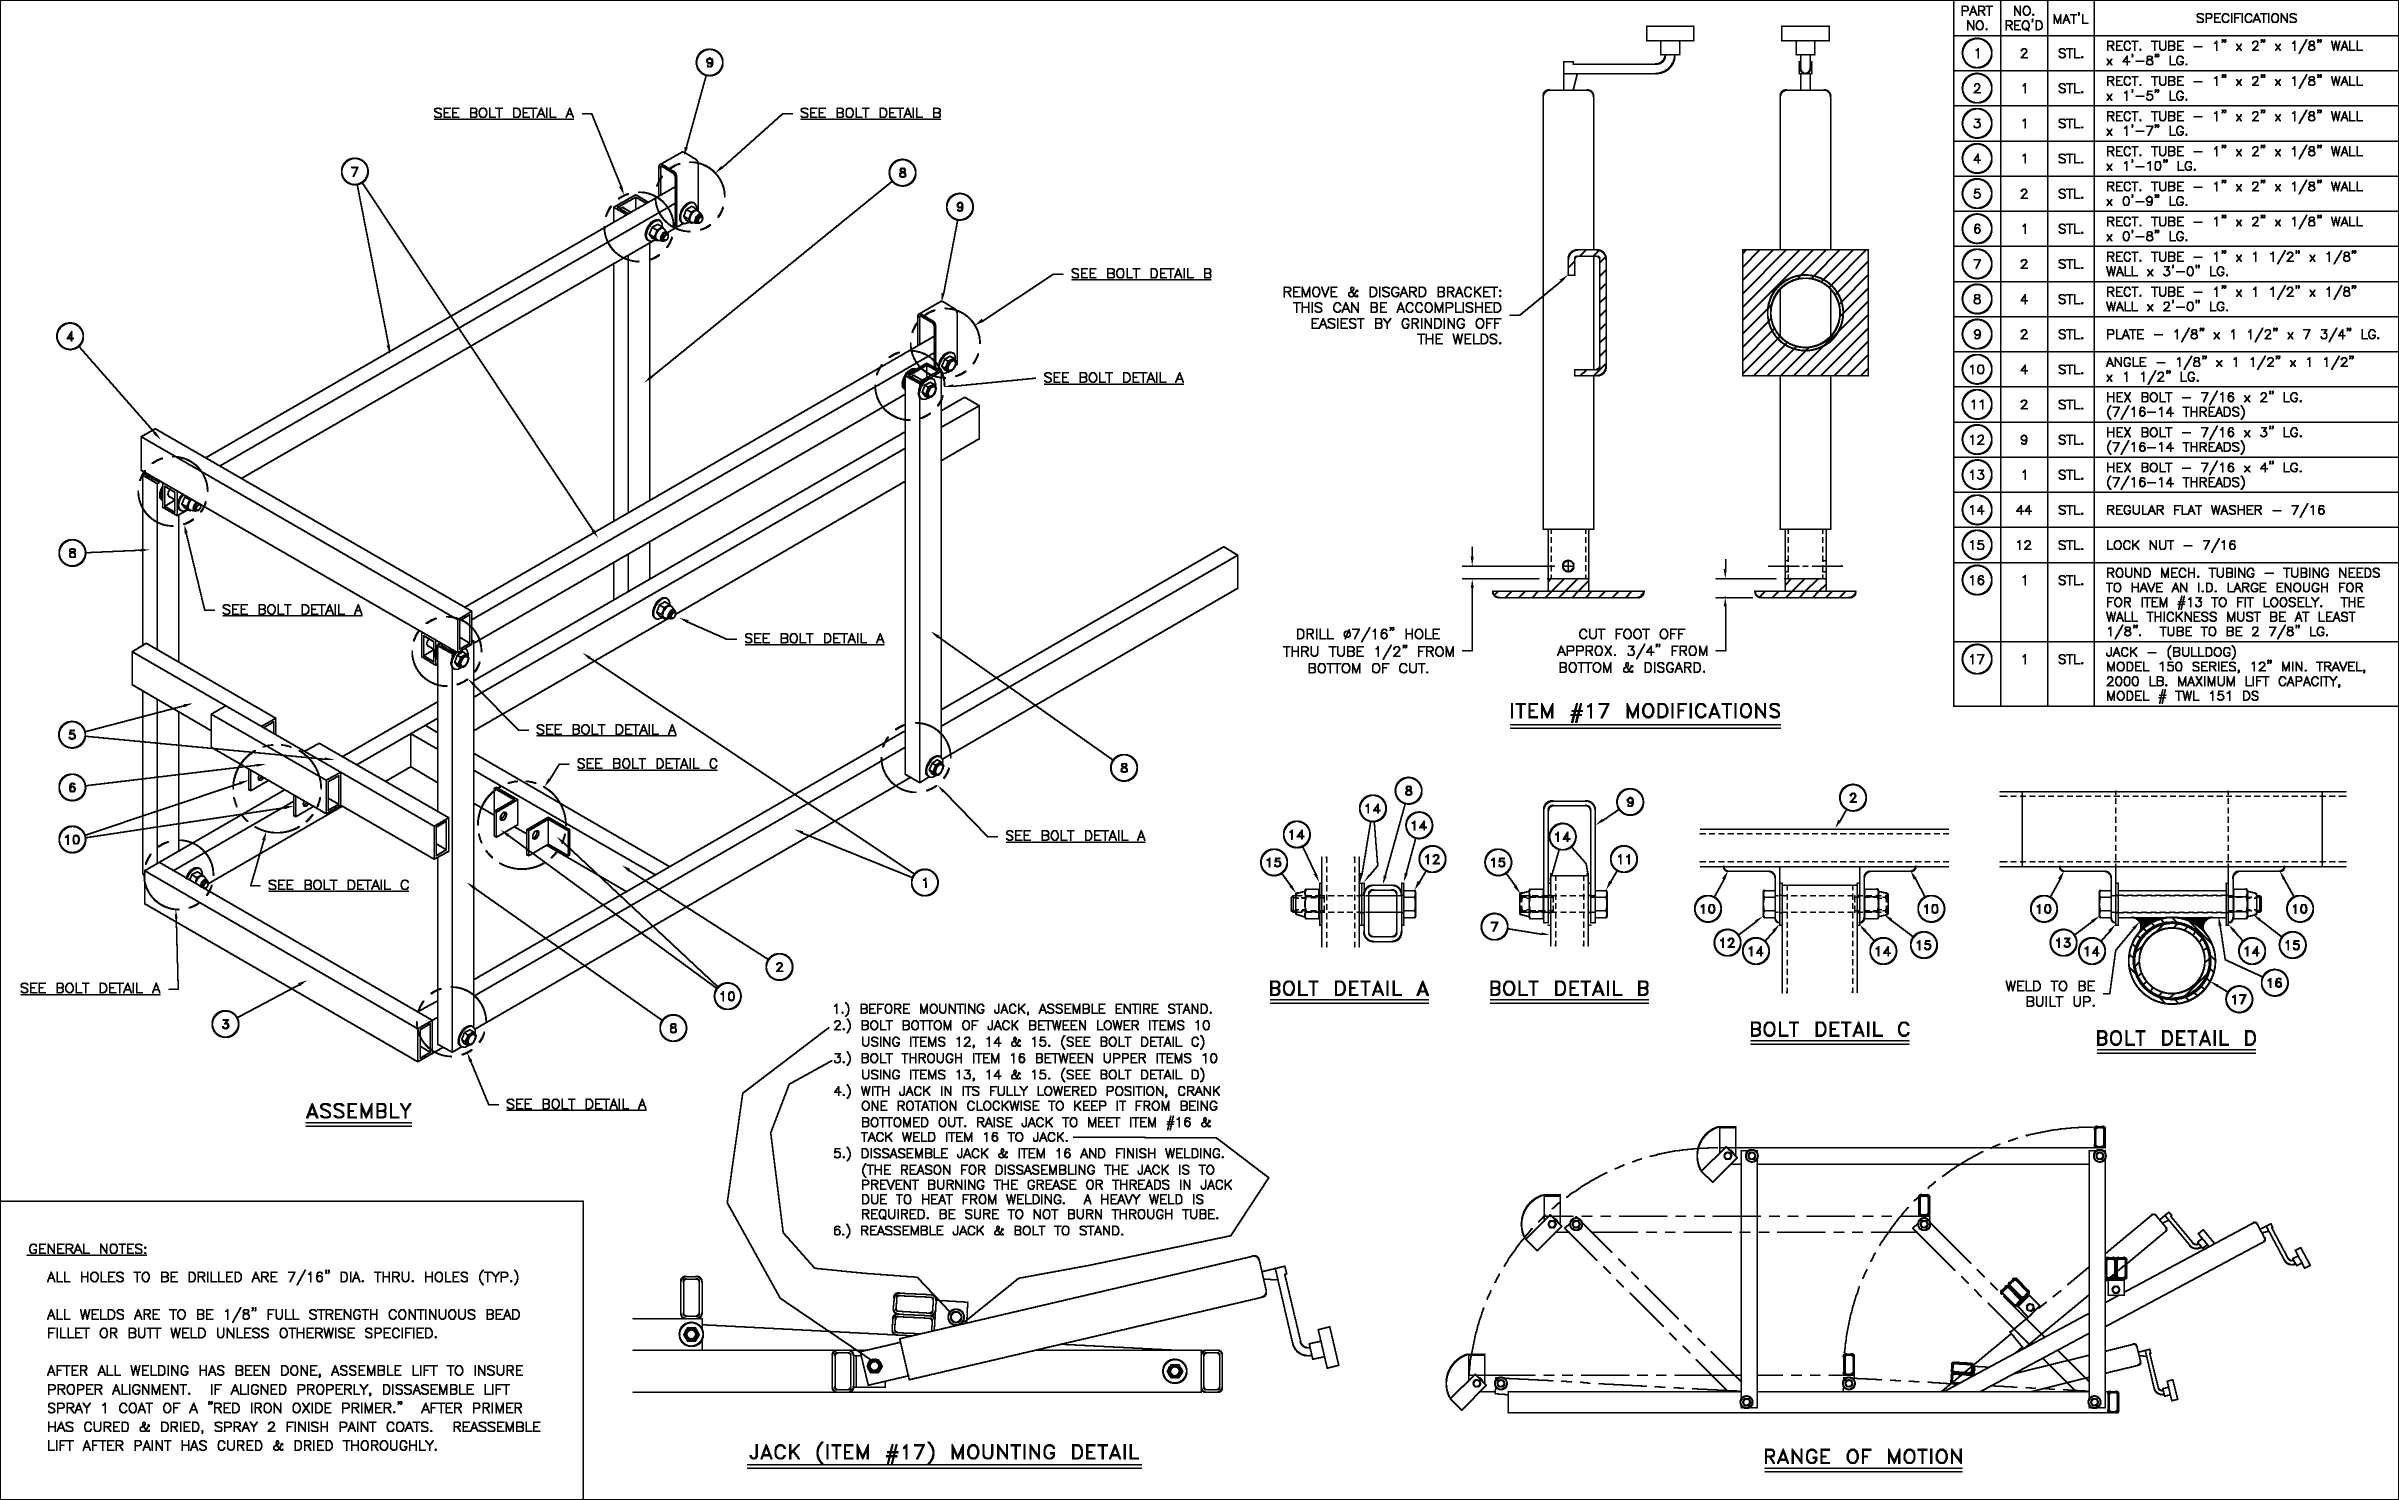 Snowmobile Engine Diagram Pin by Homemadetools On Homemade Jacks and Lifts Of Snowmobile Engine Diagram